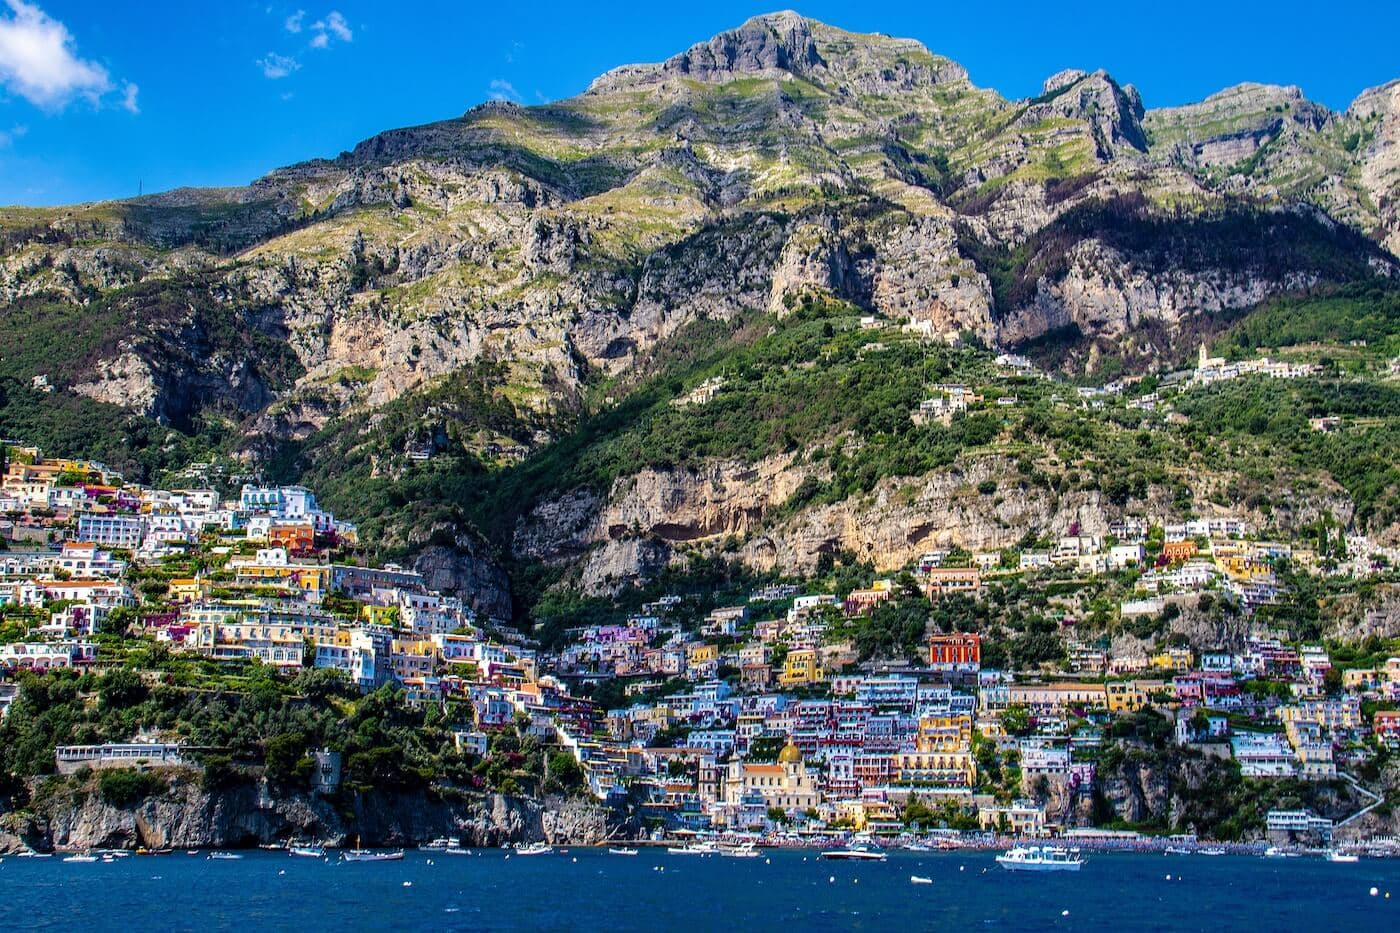 Dolce Vitality Le Sirenuse Positano Launches Luxury Wellness Retreats